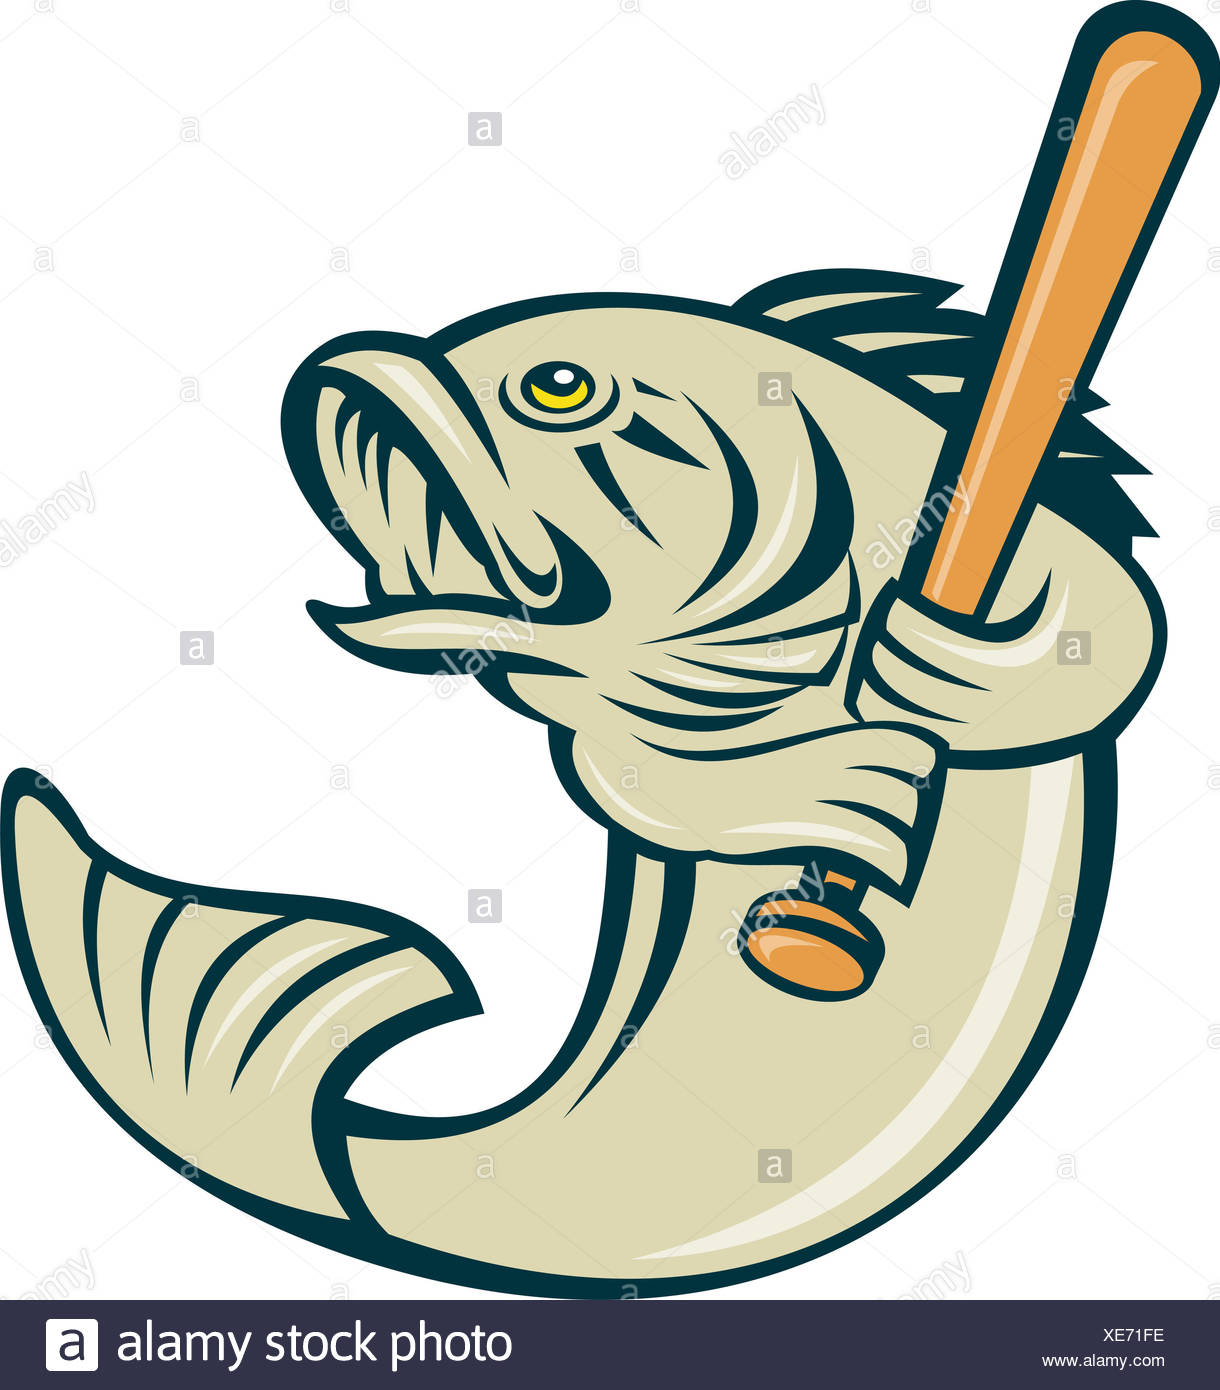 1220x1390 Largemouth Bass Fish Batting Stock Photos Amp Largemouth Bass Fish